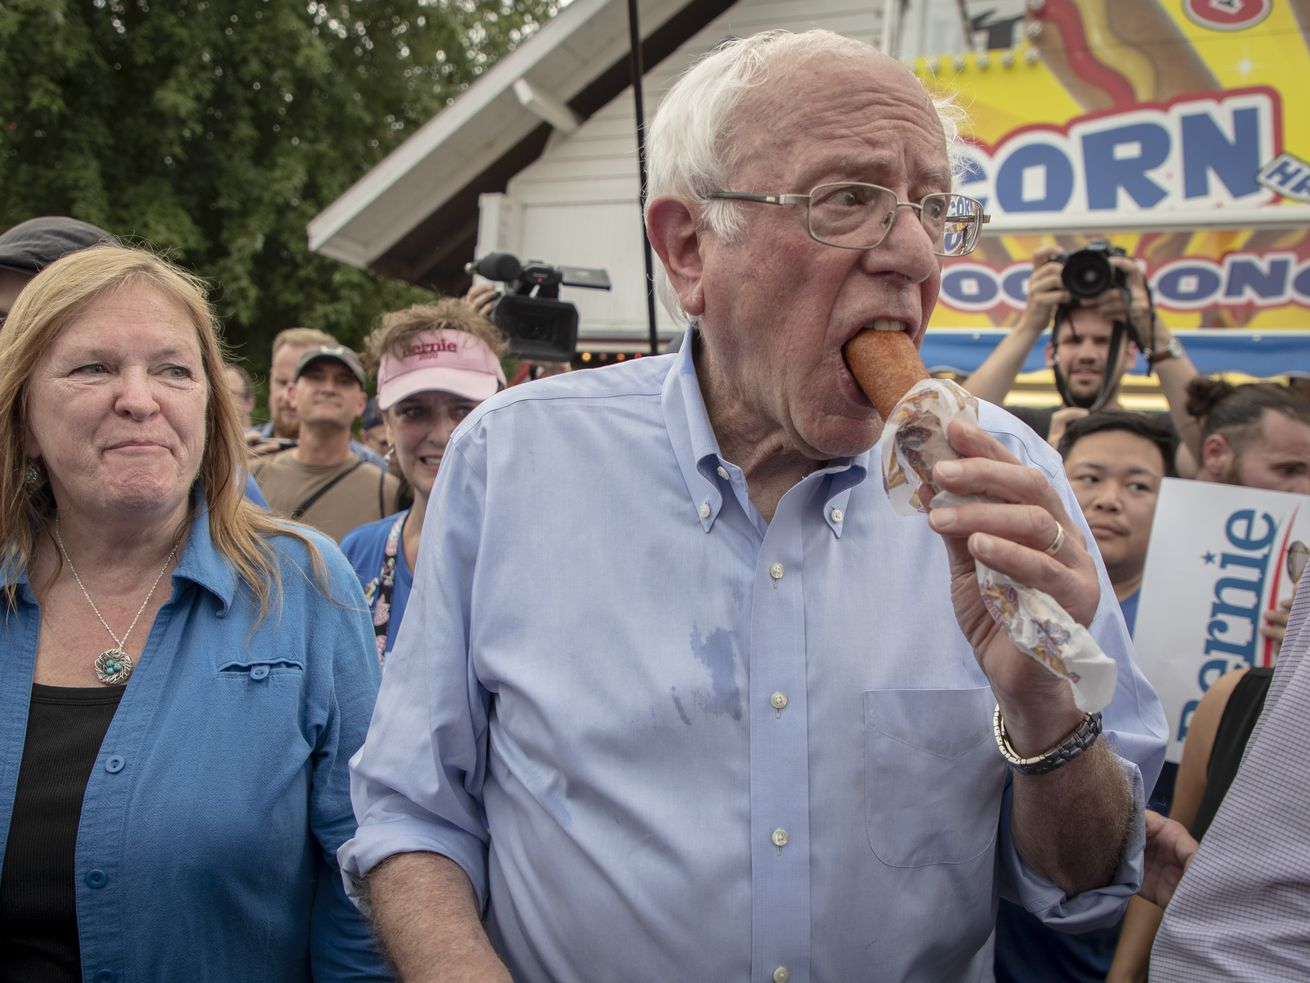 Sanders walks while eating a corn dog, with supporters following behind him.